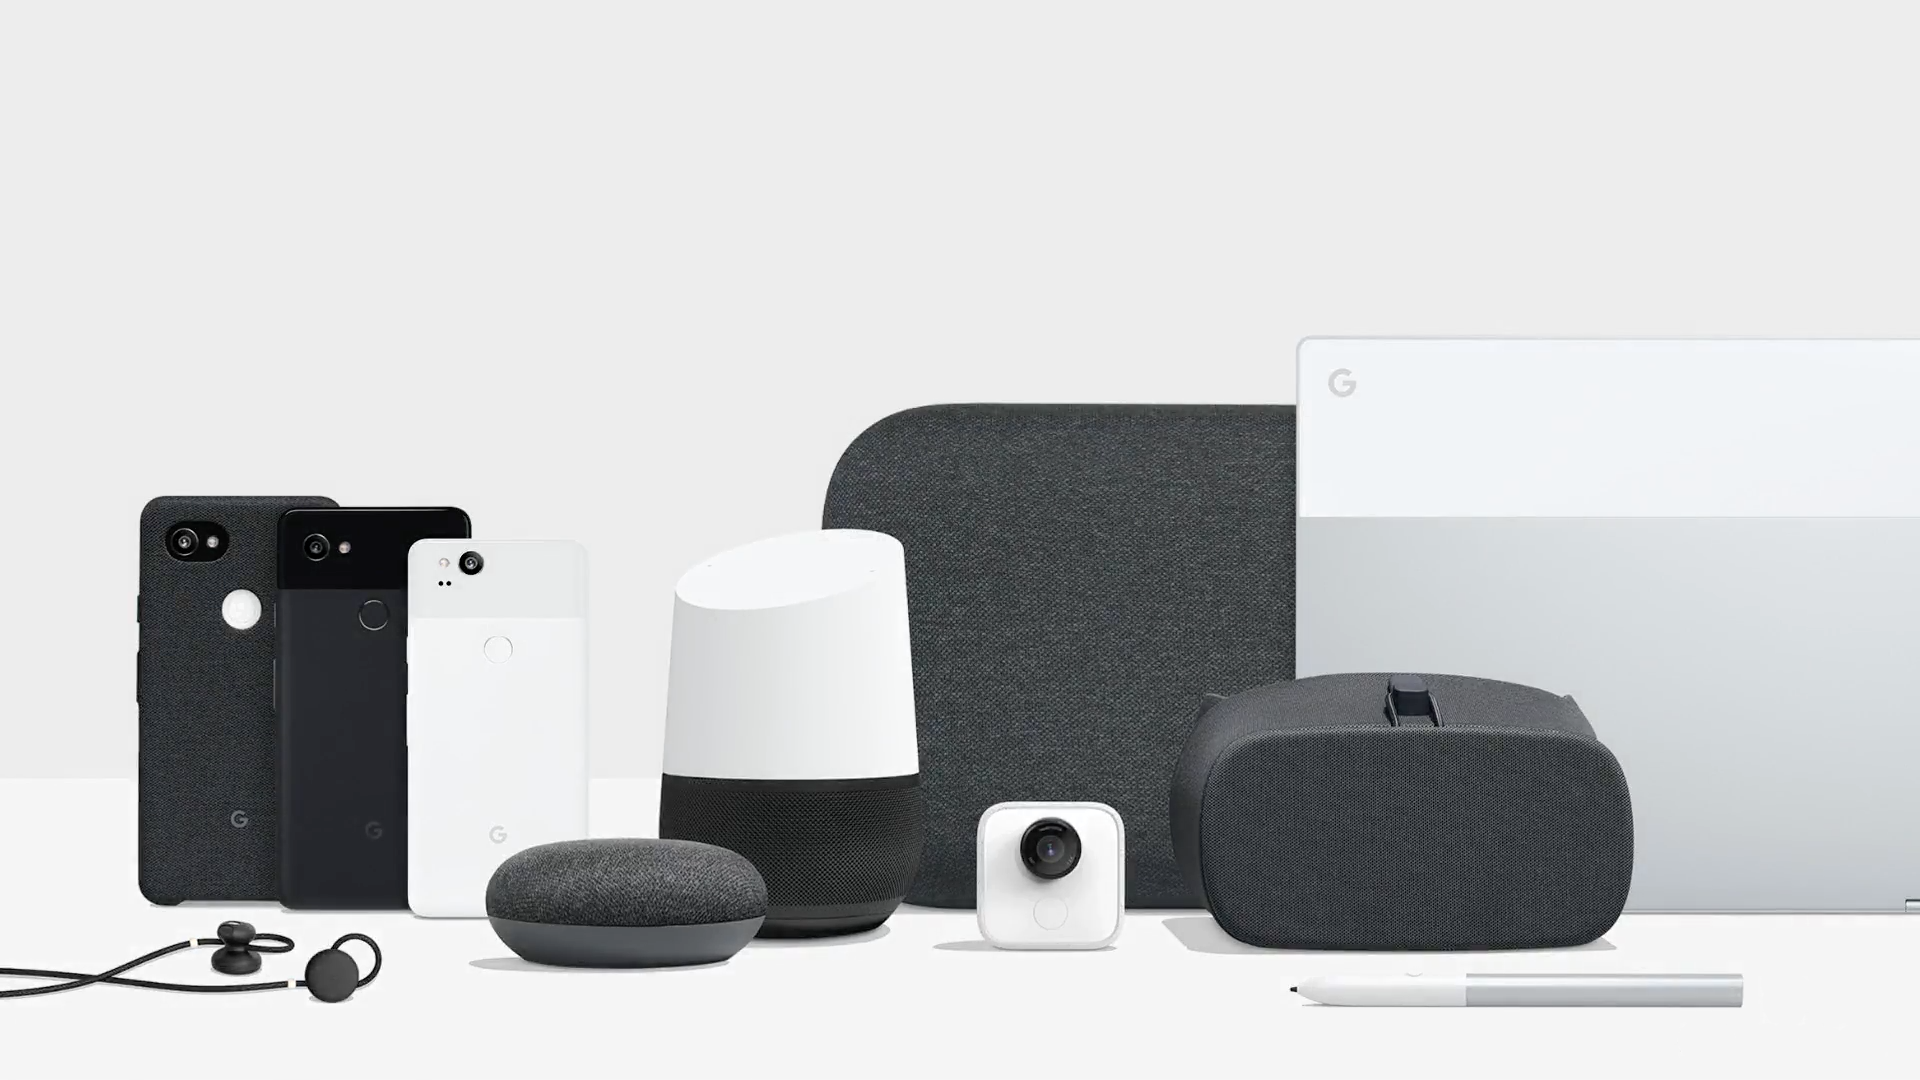 Here's Every Product Google Announced Today